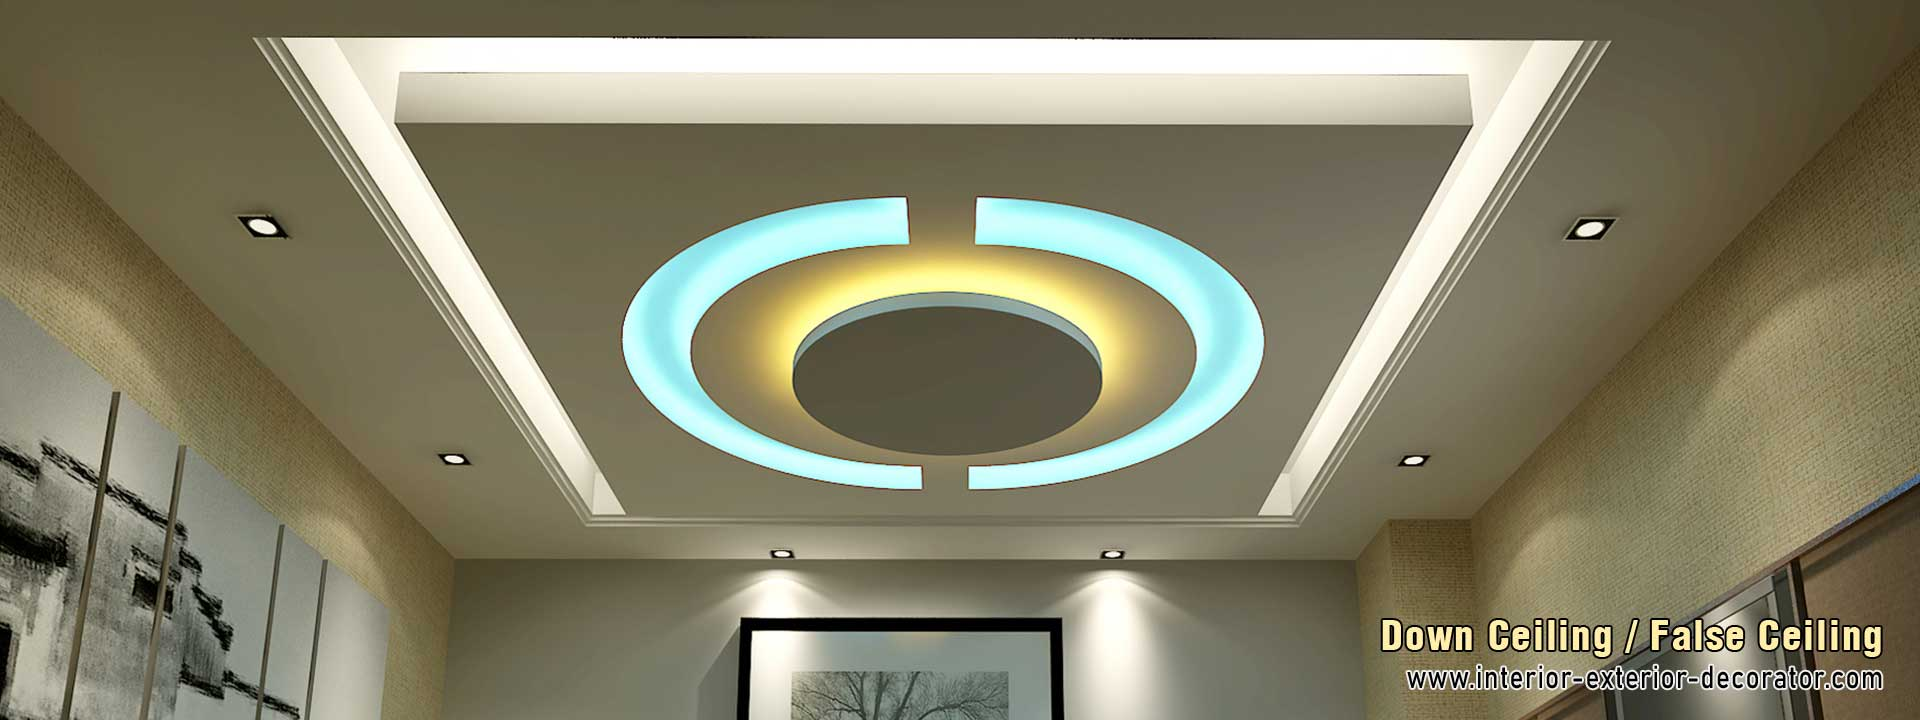 down ceiling false ceiling wooden ceiling decoration interiors manufacturers in ludhiana punjab india